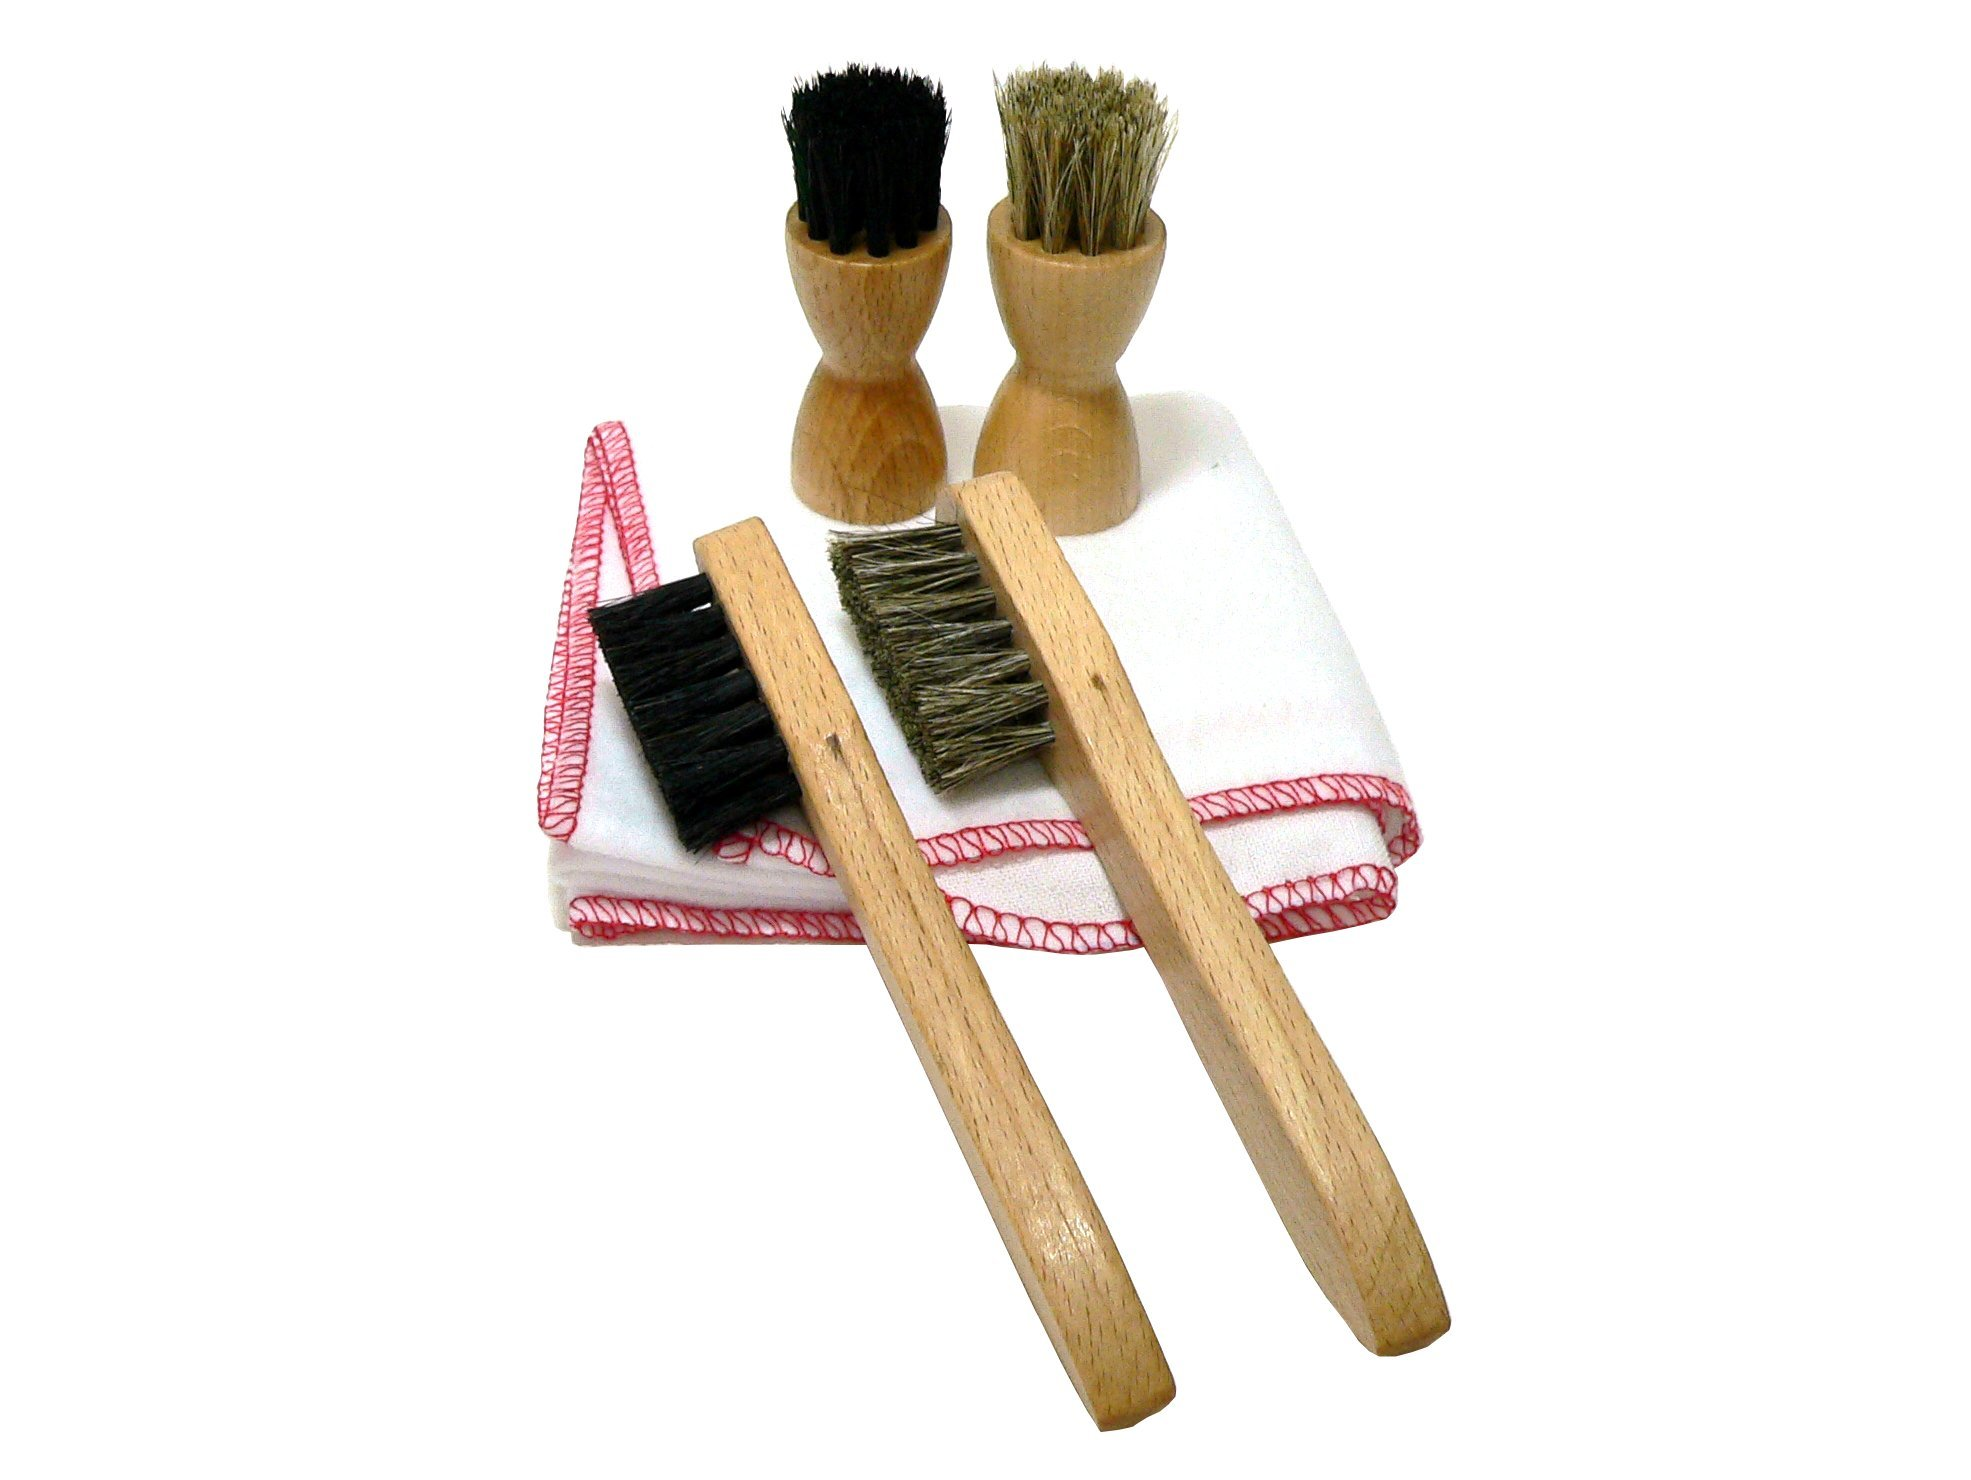 4 Shoe Cream Applicator Brushes with Buffing Cloth for Shoe Care Genuine HorseHair All Natural by Valentino Garemi